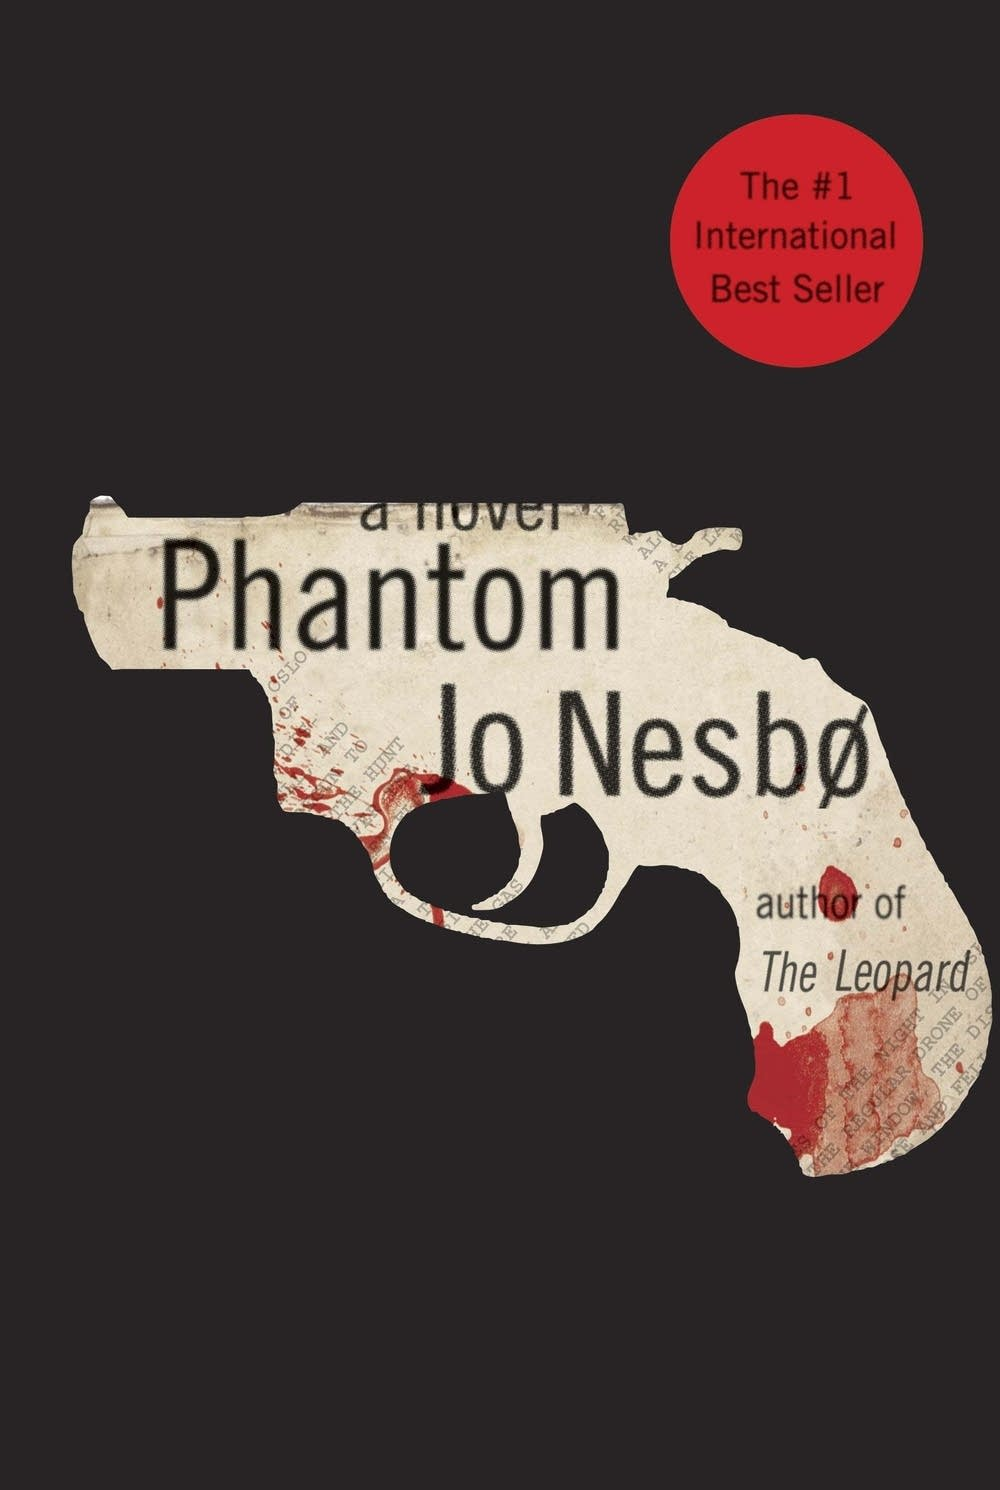 'Phantom' by Jo Nesbo